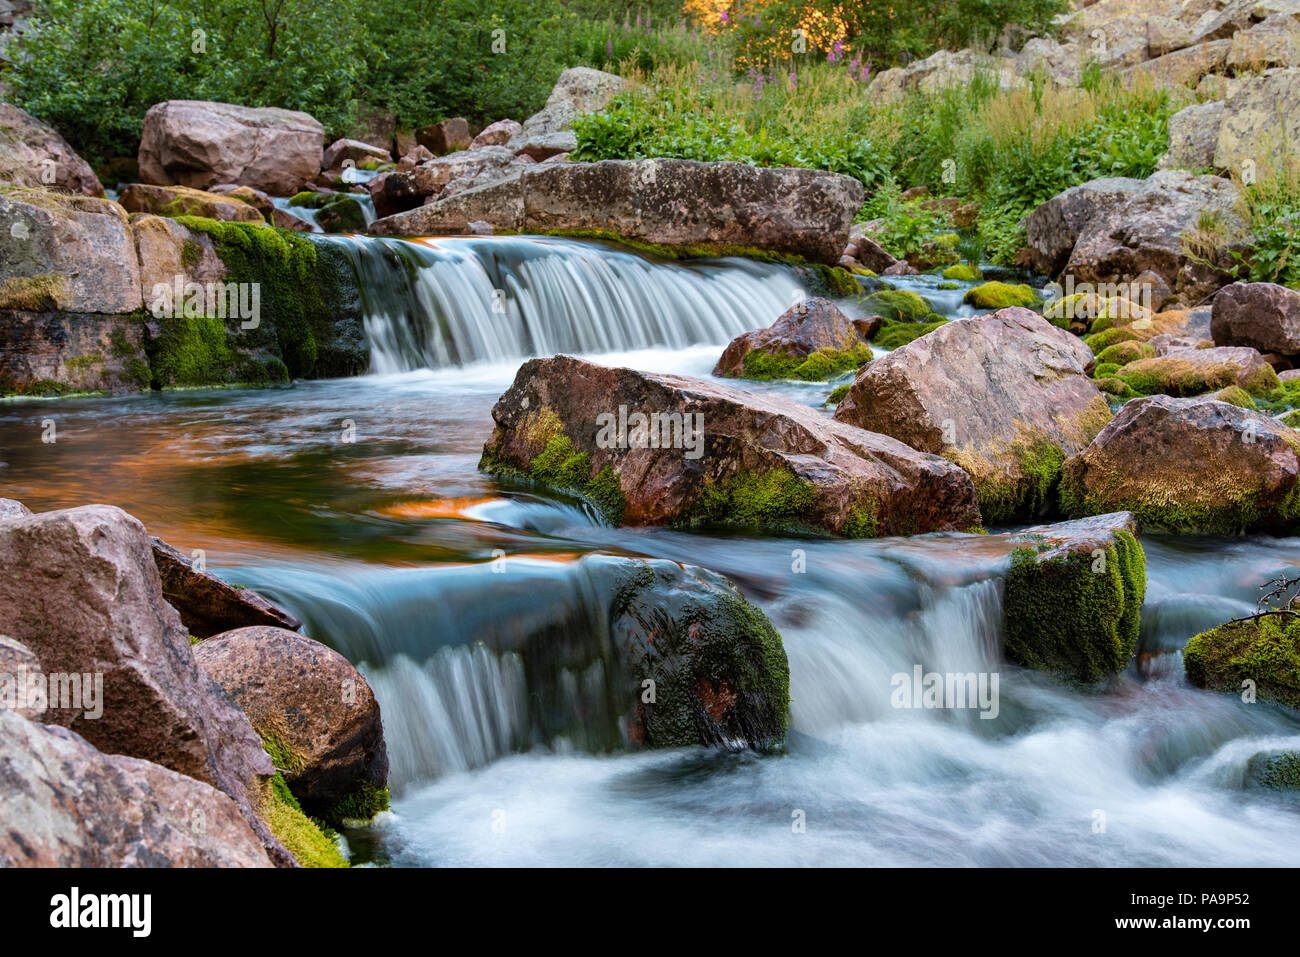 stream with white water at fulufjallet nature reserve in sweden - Stock Image